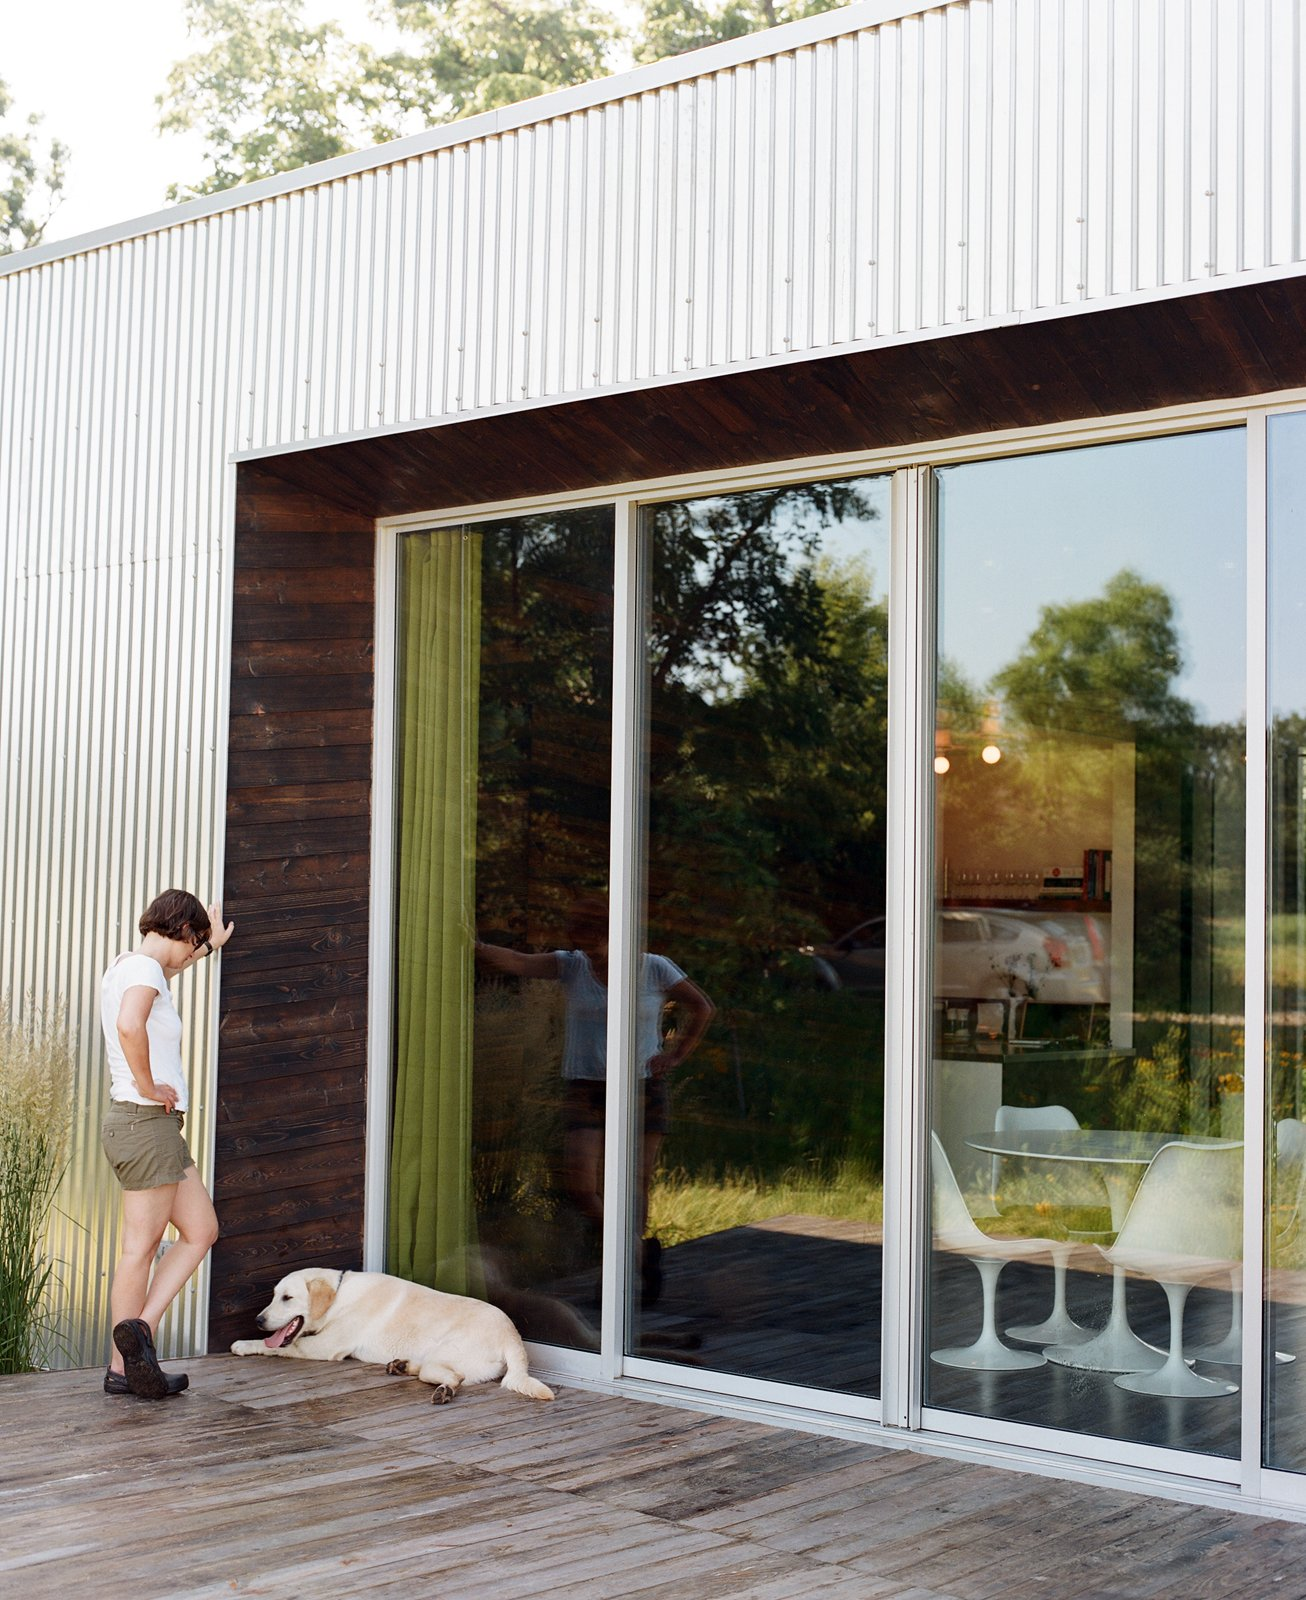 Out on the deck, Pascal enjoys some relaxed time with their dog, taking a breather in a bit of shade while sun streams across the meadow.  Photo 11 of 25 in 25 Dogs Living in the Modern World from How To: Inviting Front Doors for Modern Homes